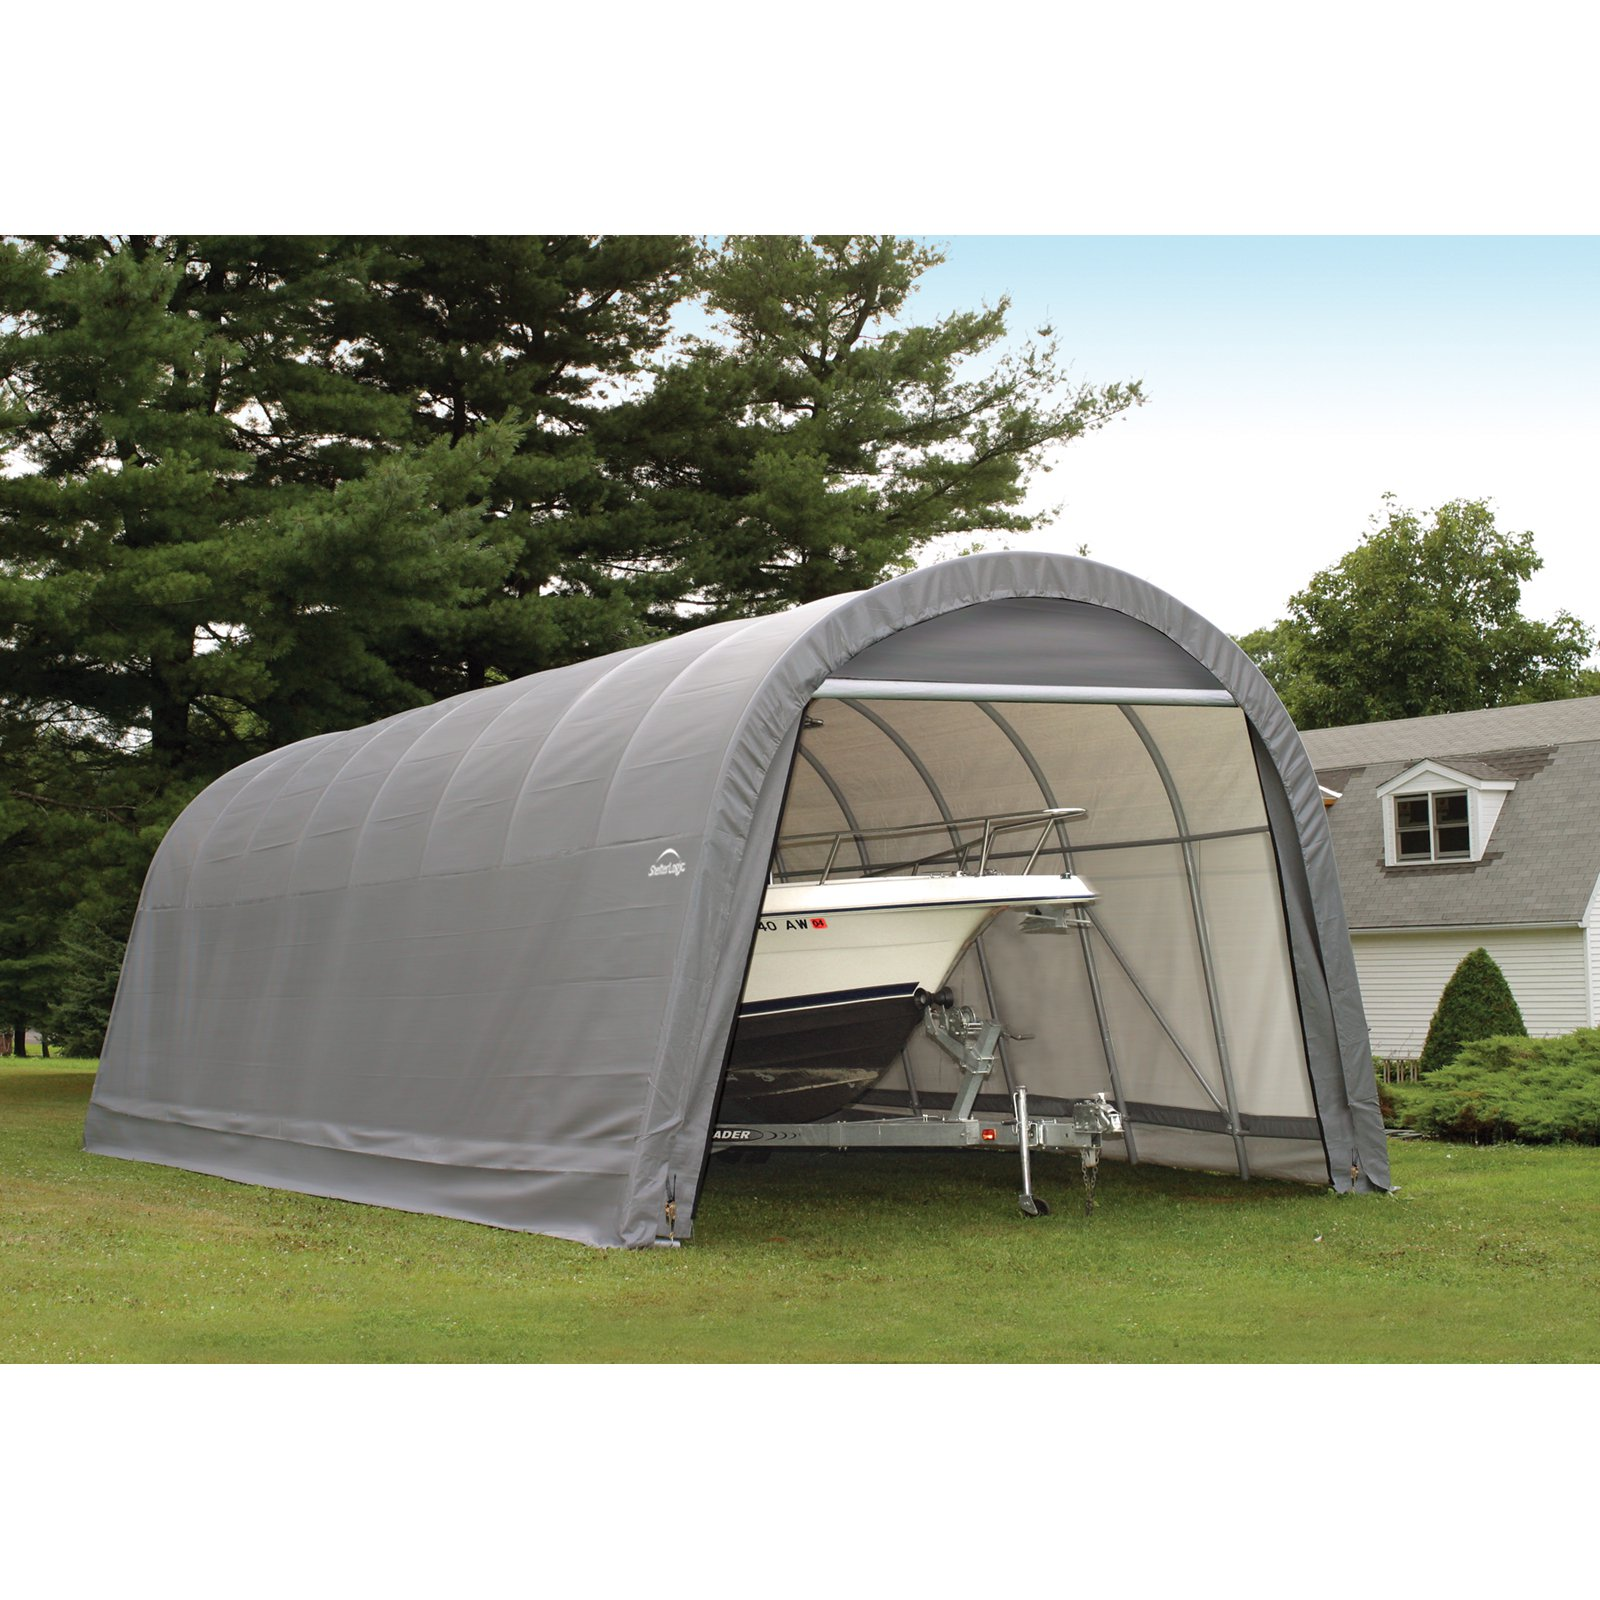 15' x 24' x 12' Round Style Shelter, Gray